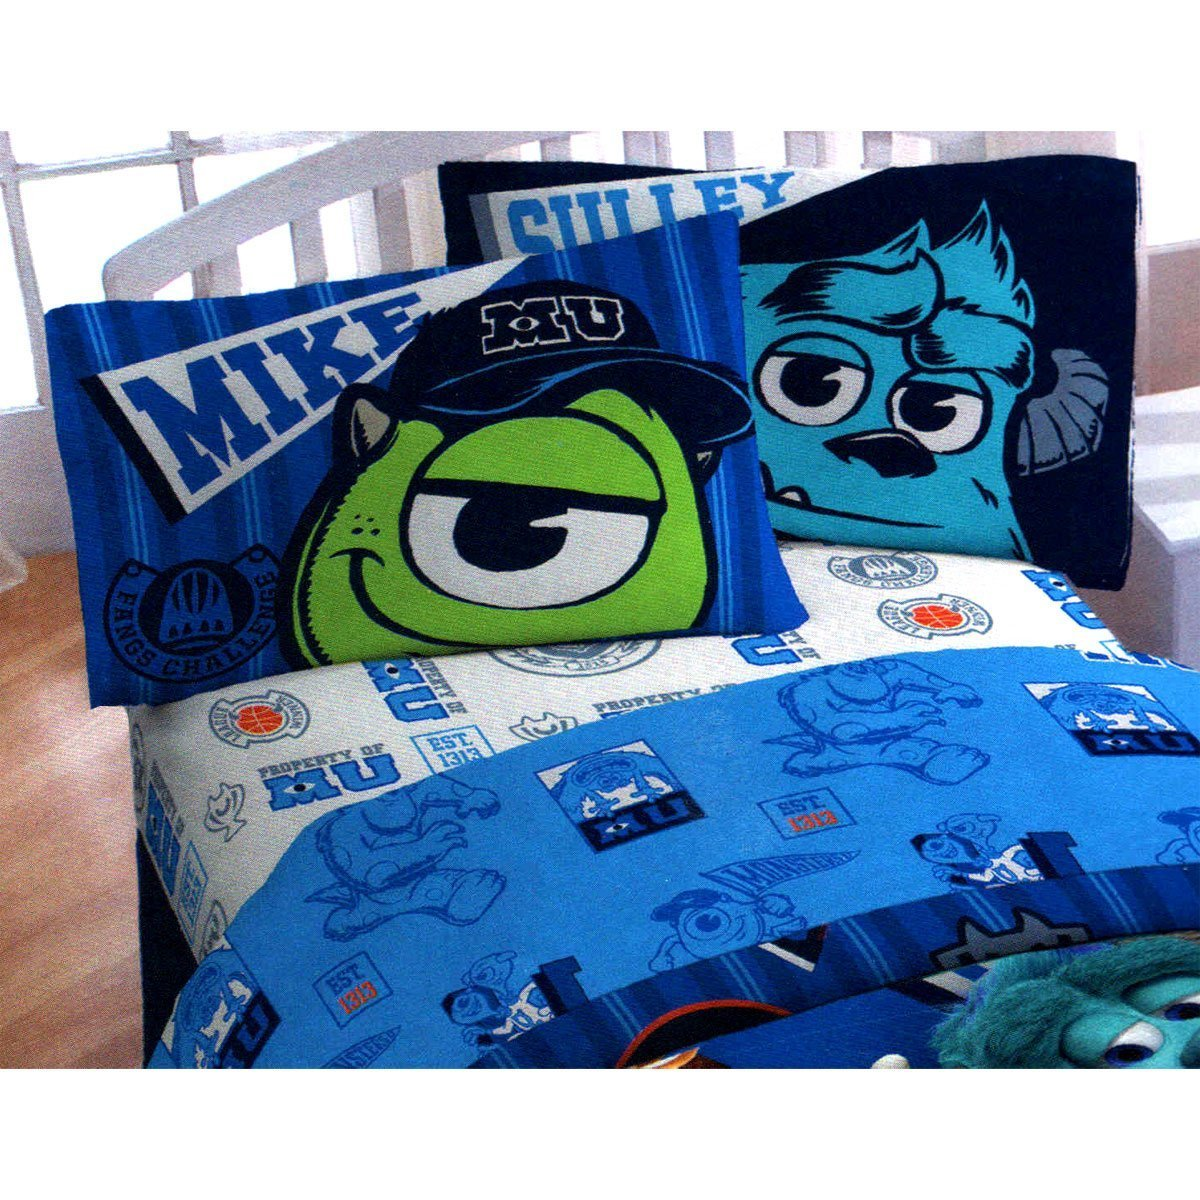 Best Monsters Inc Bedroom Decor Archives Groovy Kids Gear With Pictures